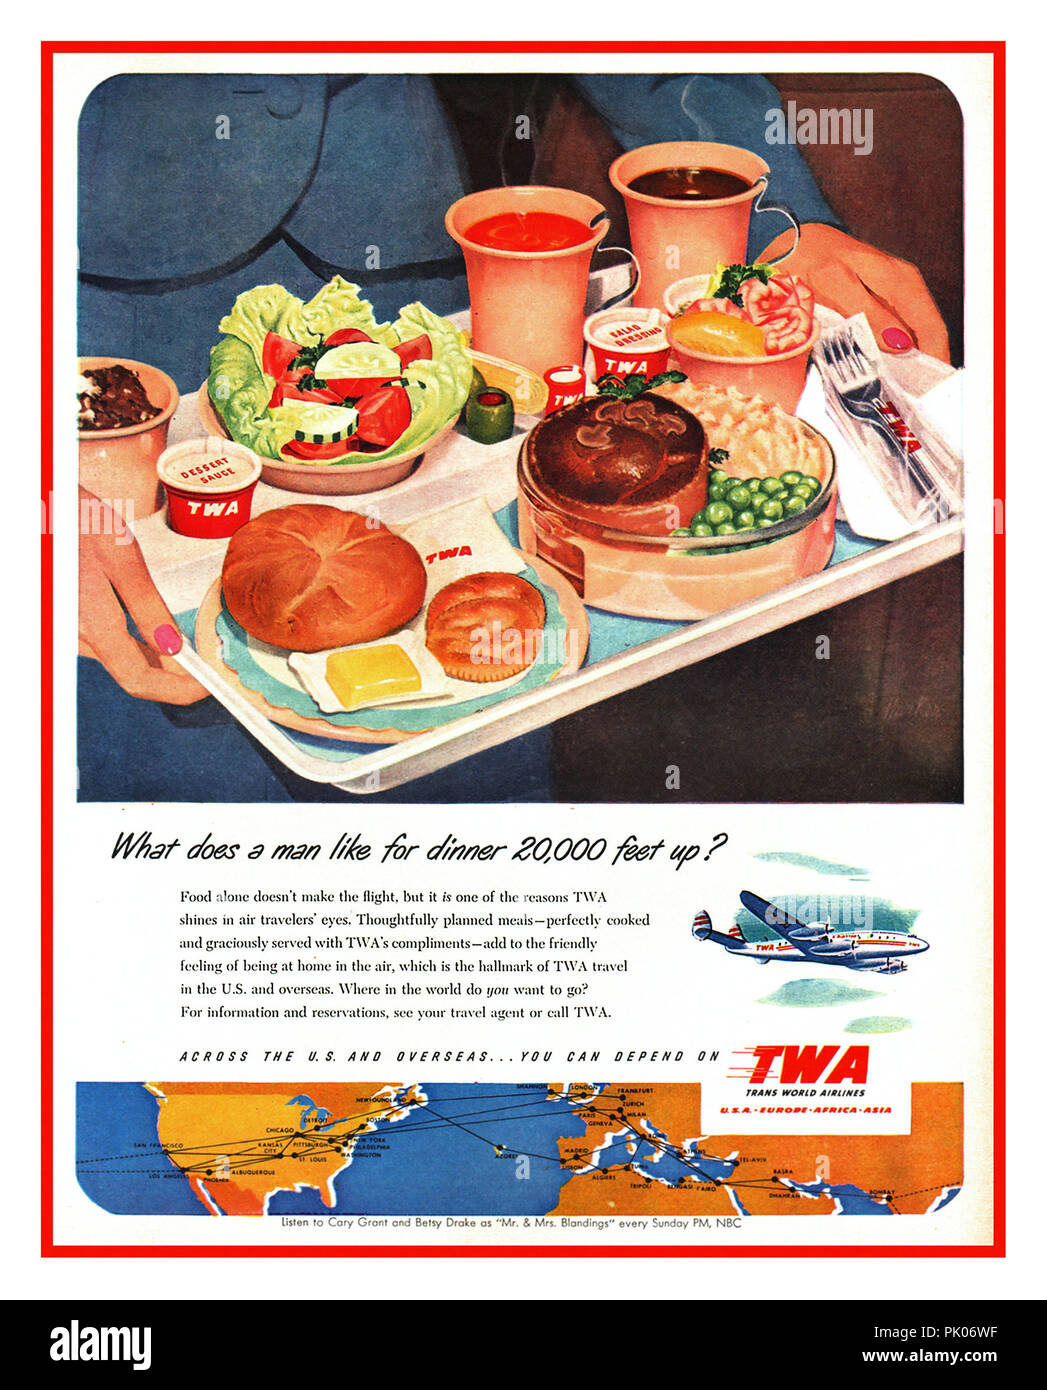 """Vintage airline food advert for TWA Meals 1951 Aviation Airline catering in-flight meal food tray """" What does a man like for dinner 20,000 feet up ?"""" - Stock Image"""